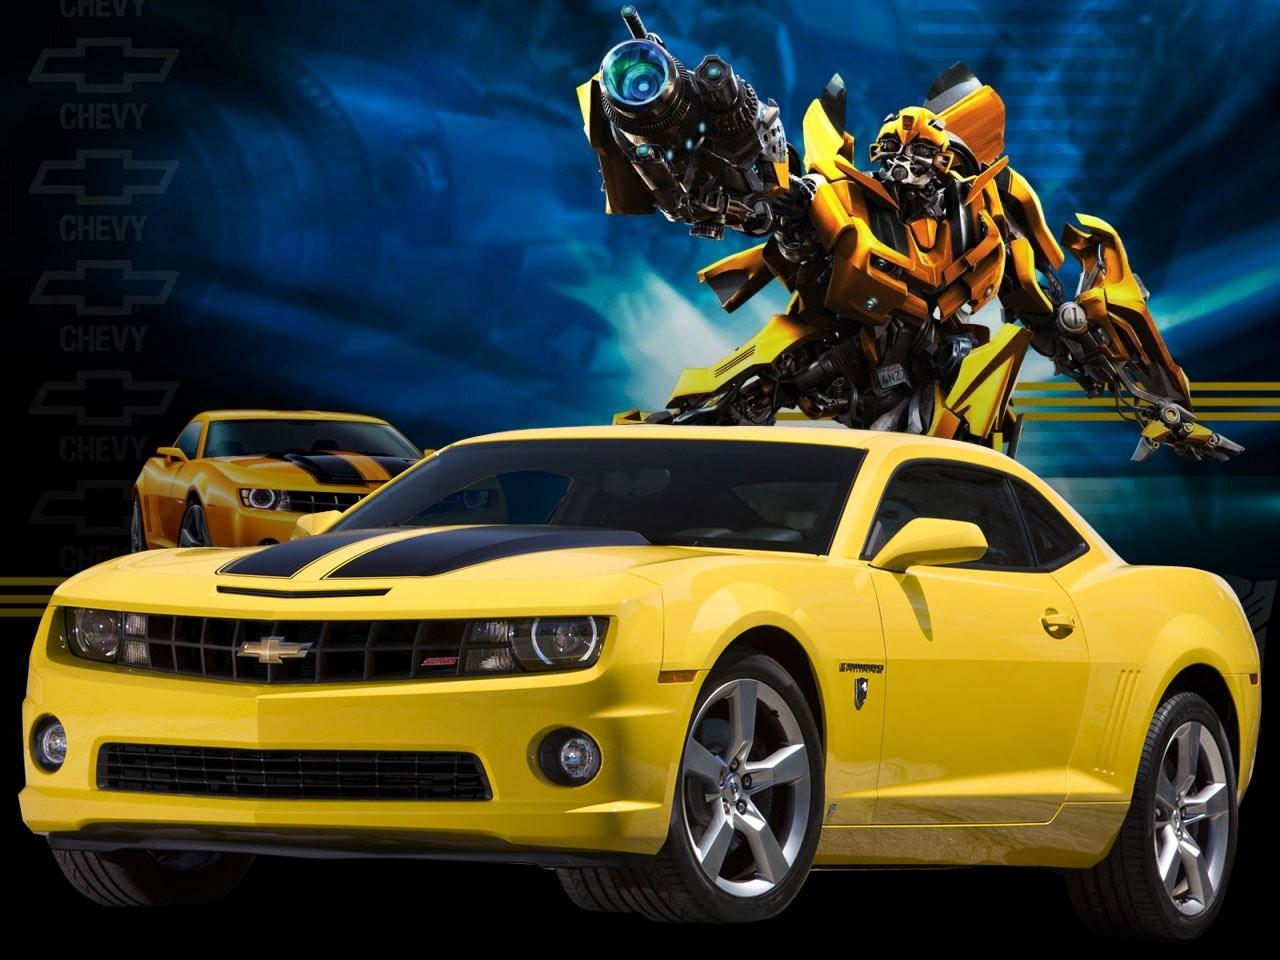 Camaro Bumblebee Car Wallpaper Specs